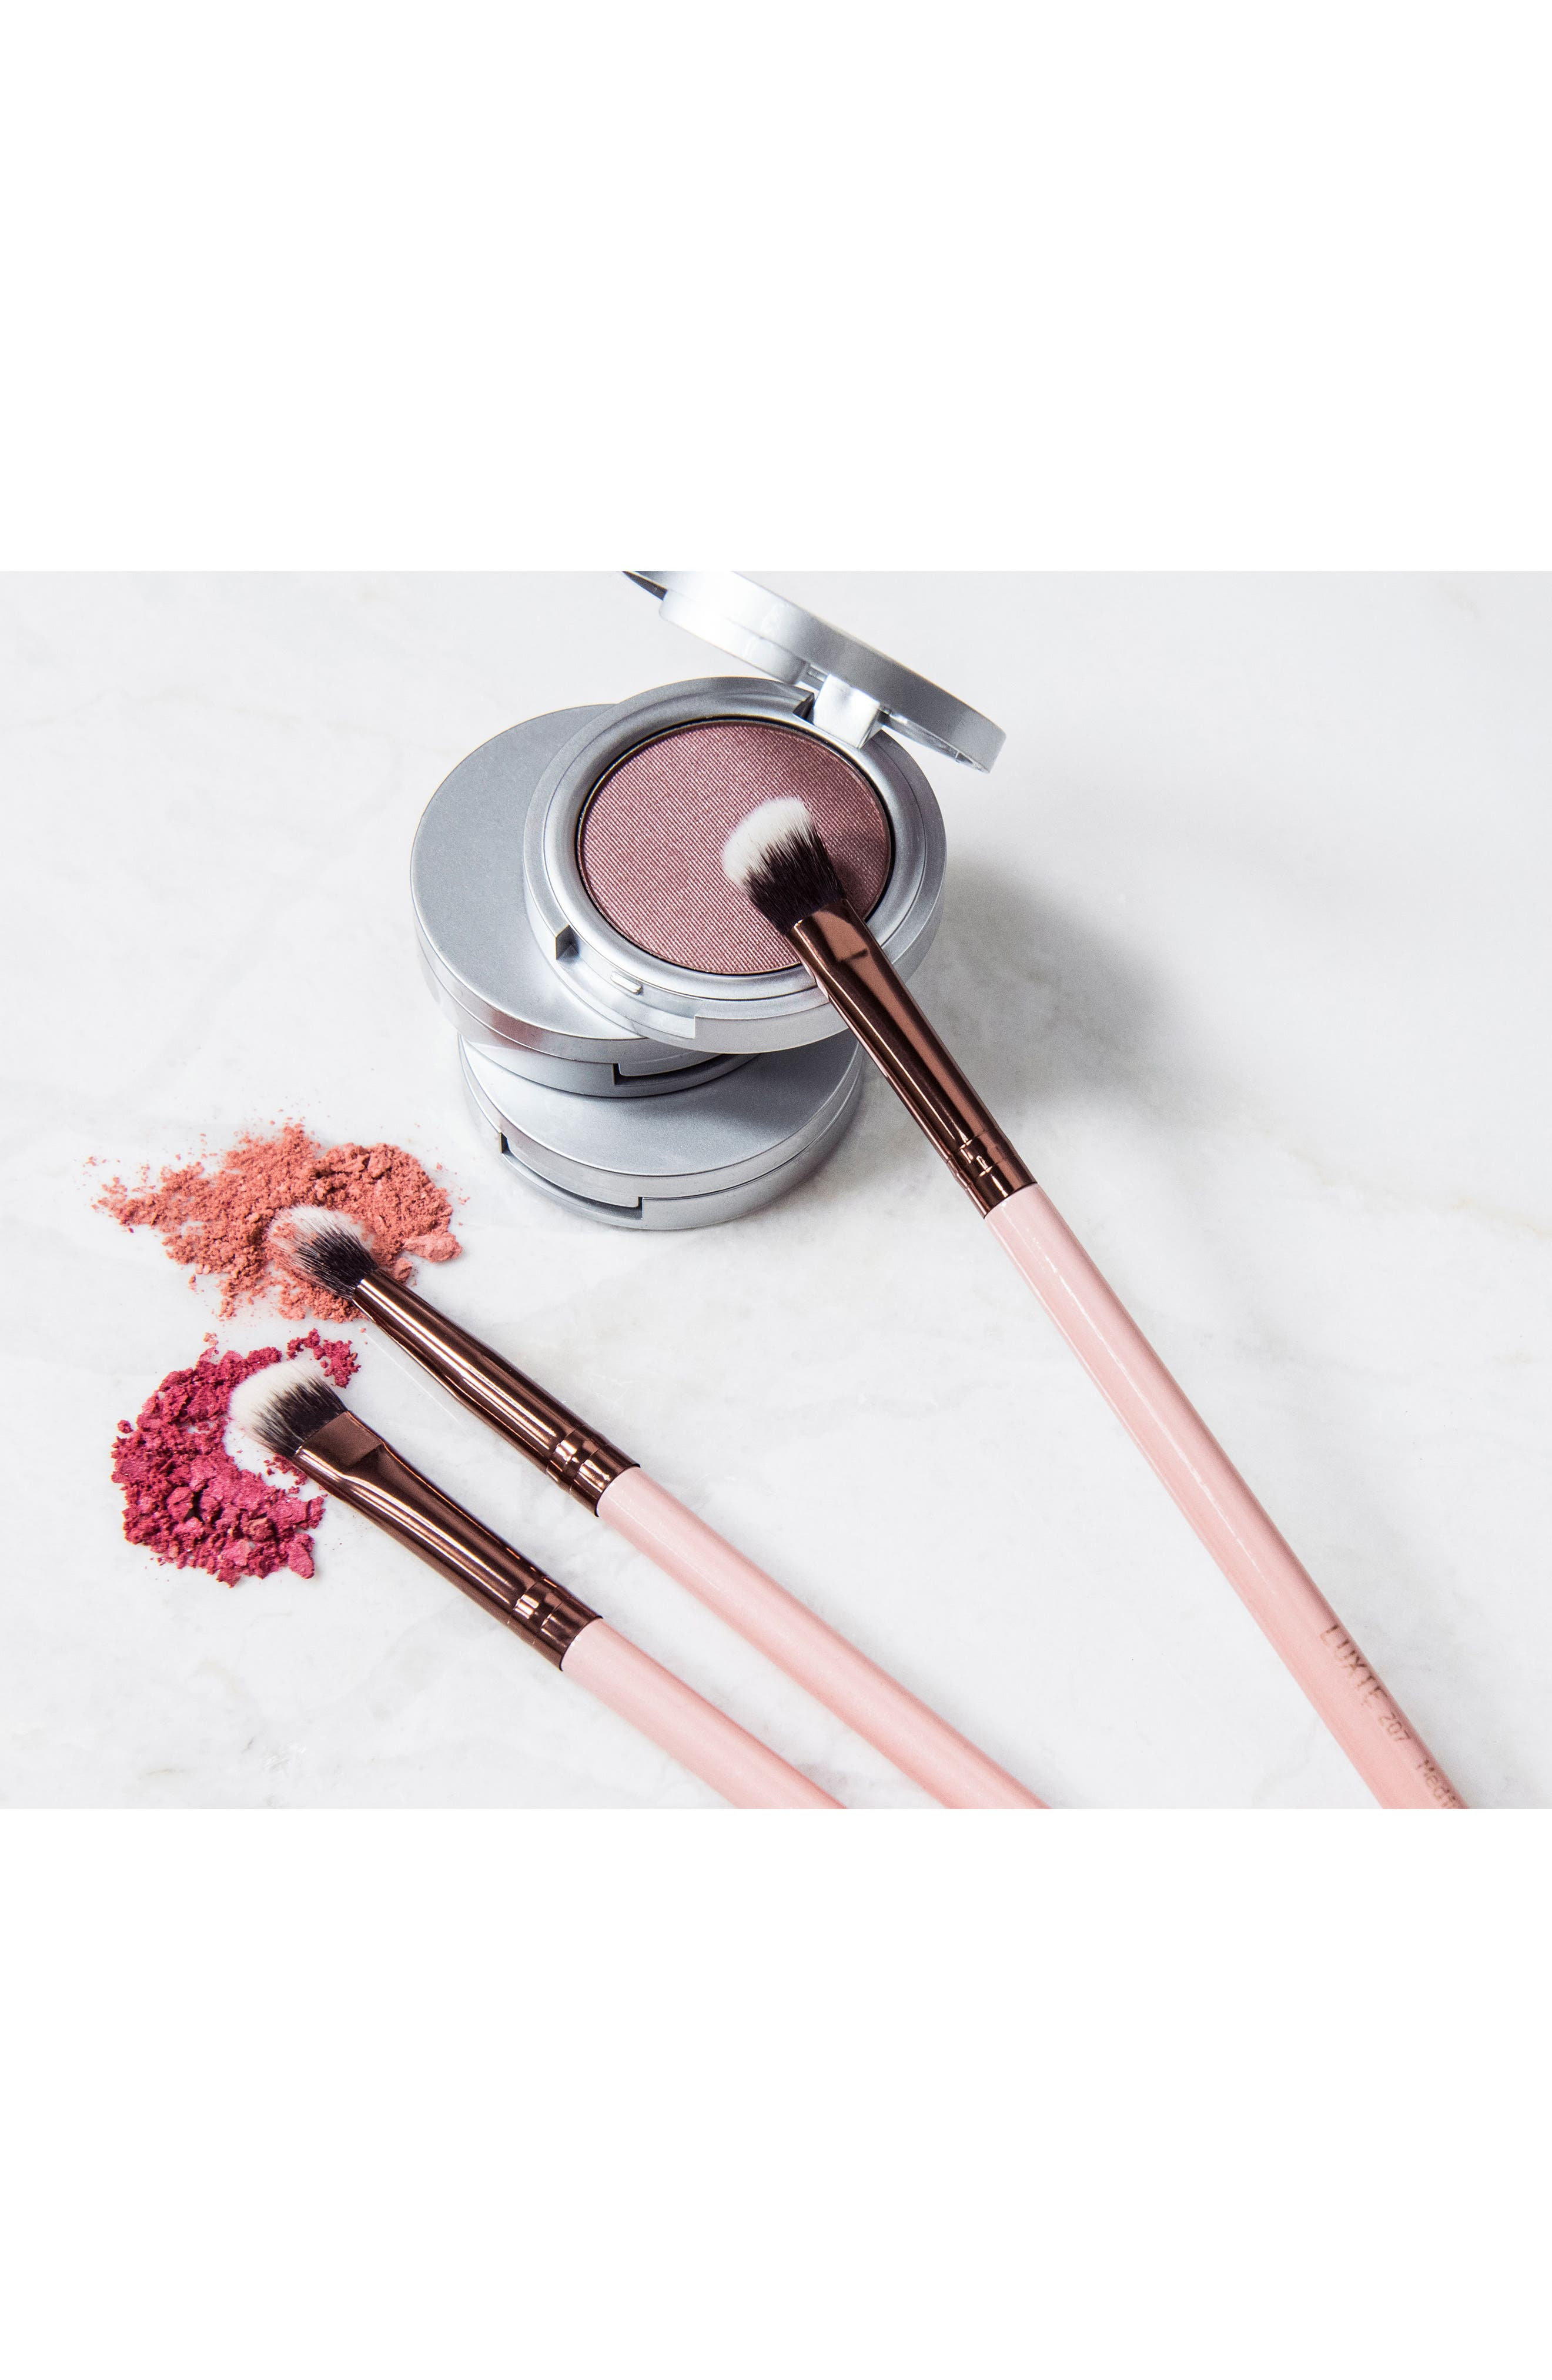 231 Rose Gold Small Tapered Blending Brush,                             Alternate thumbnail 2, color,                             No Color